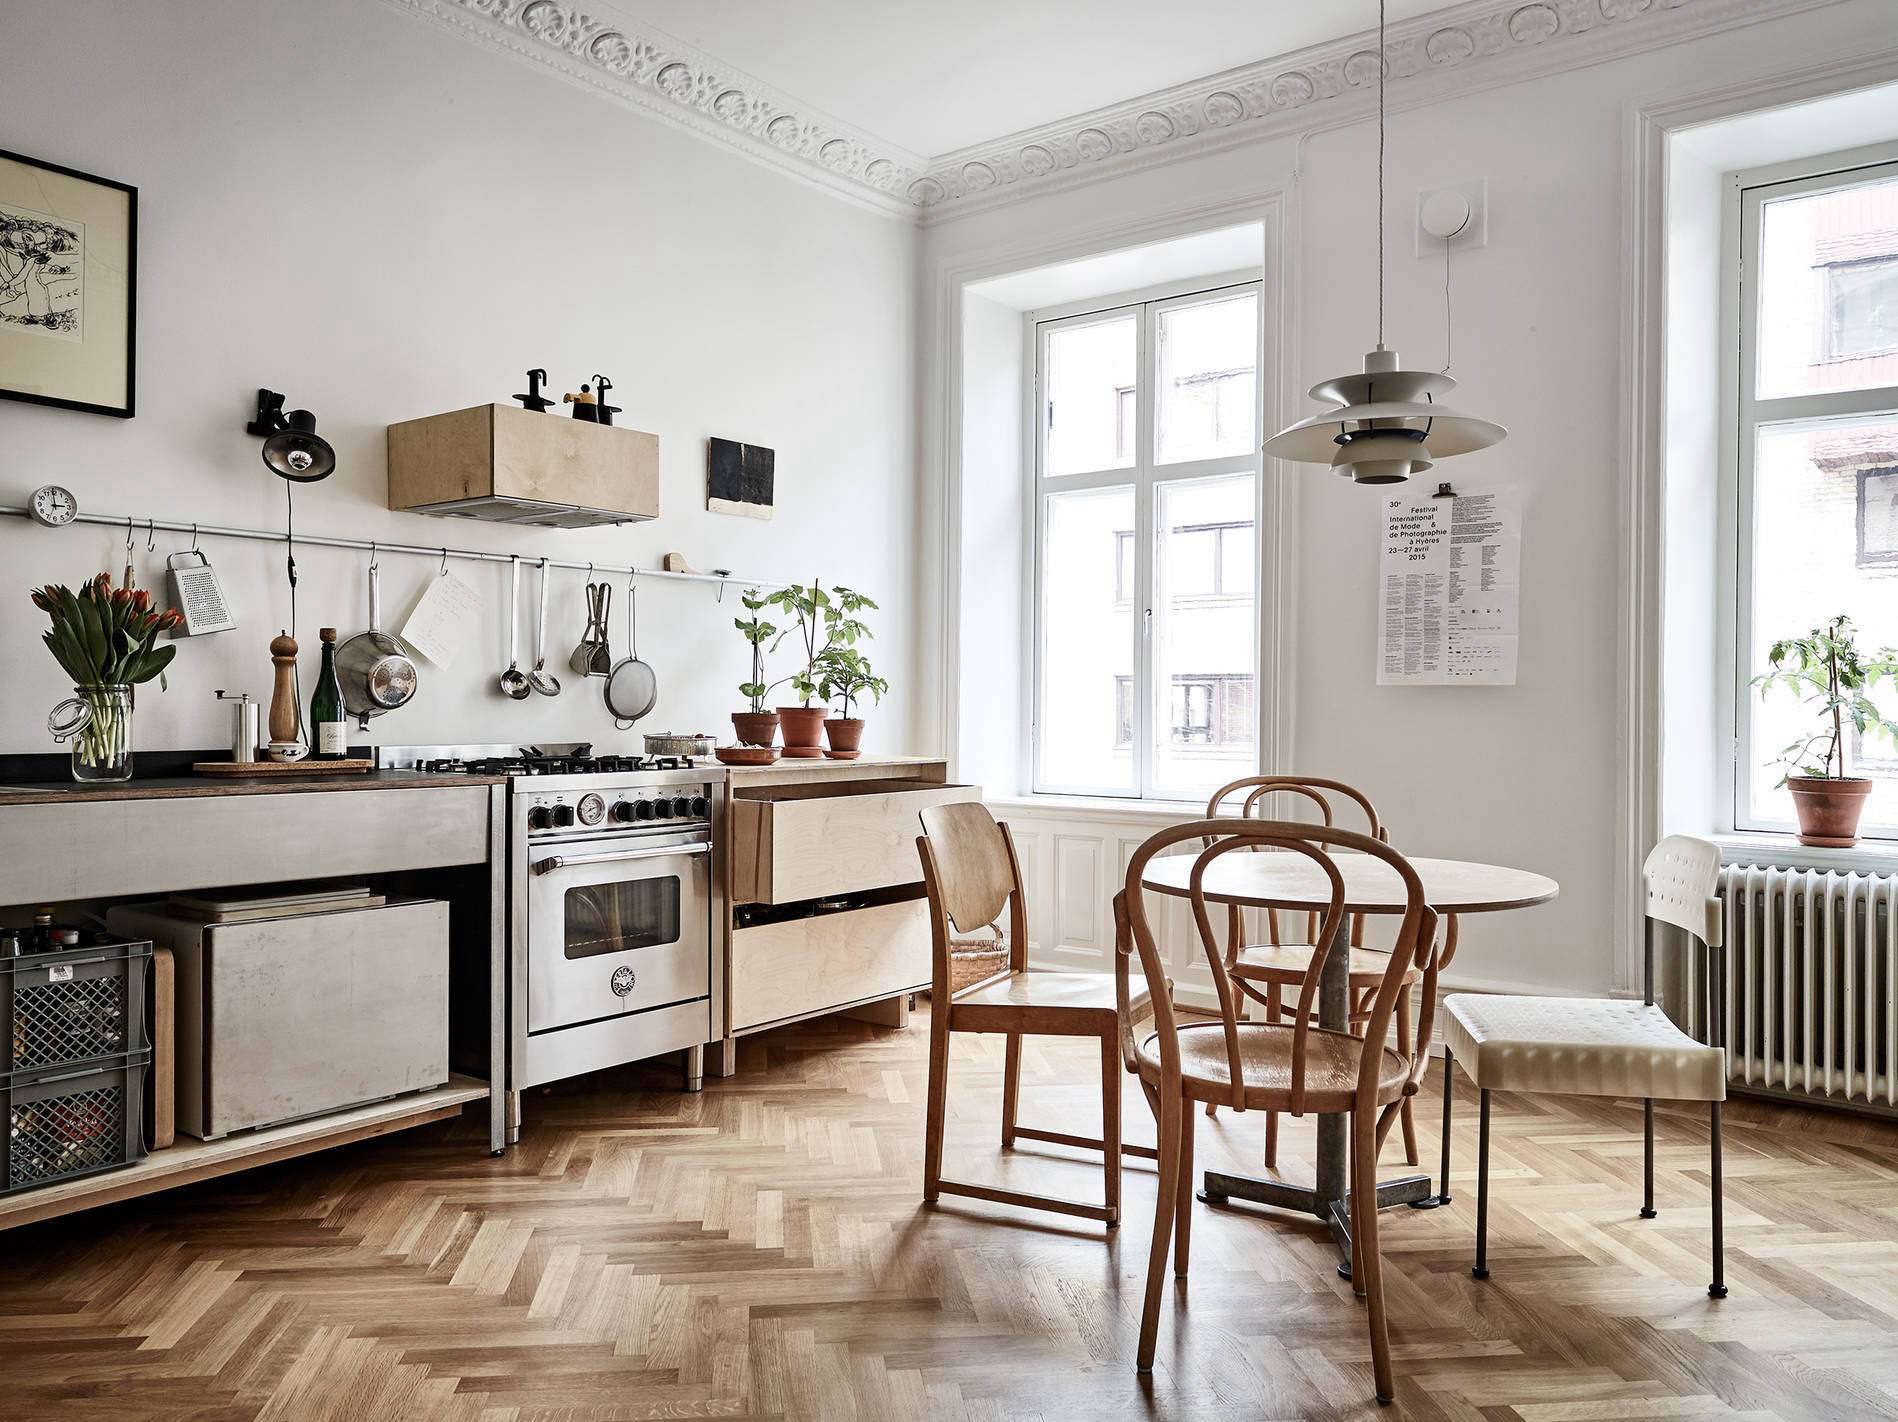 Steal This Look Smart Storage in a Swedish Kitchen A smallrounddining table is paired with a mixofvintage chairs. Photograph courtesy of Stadshem.